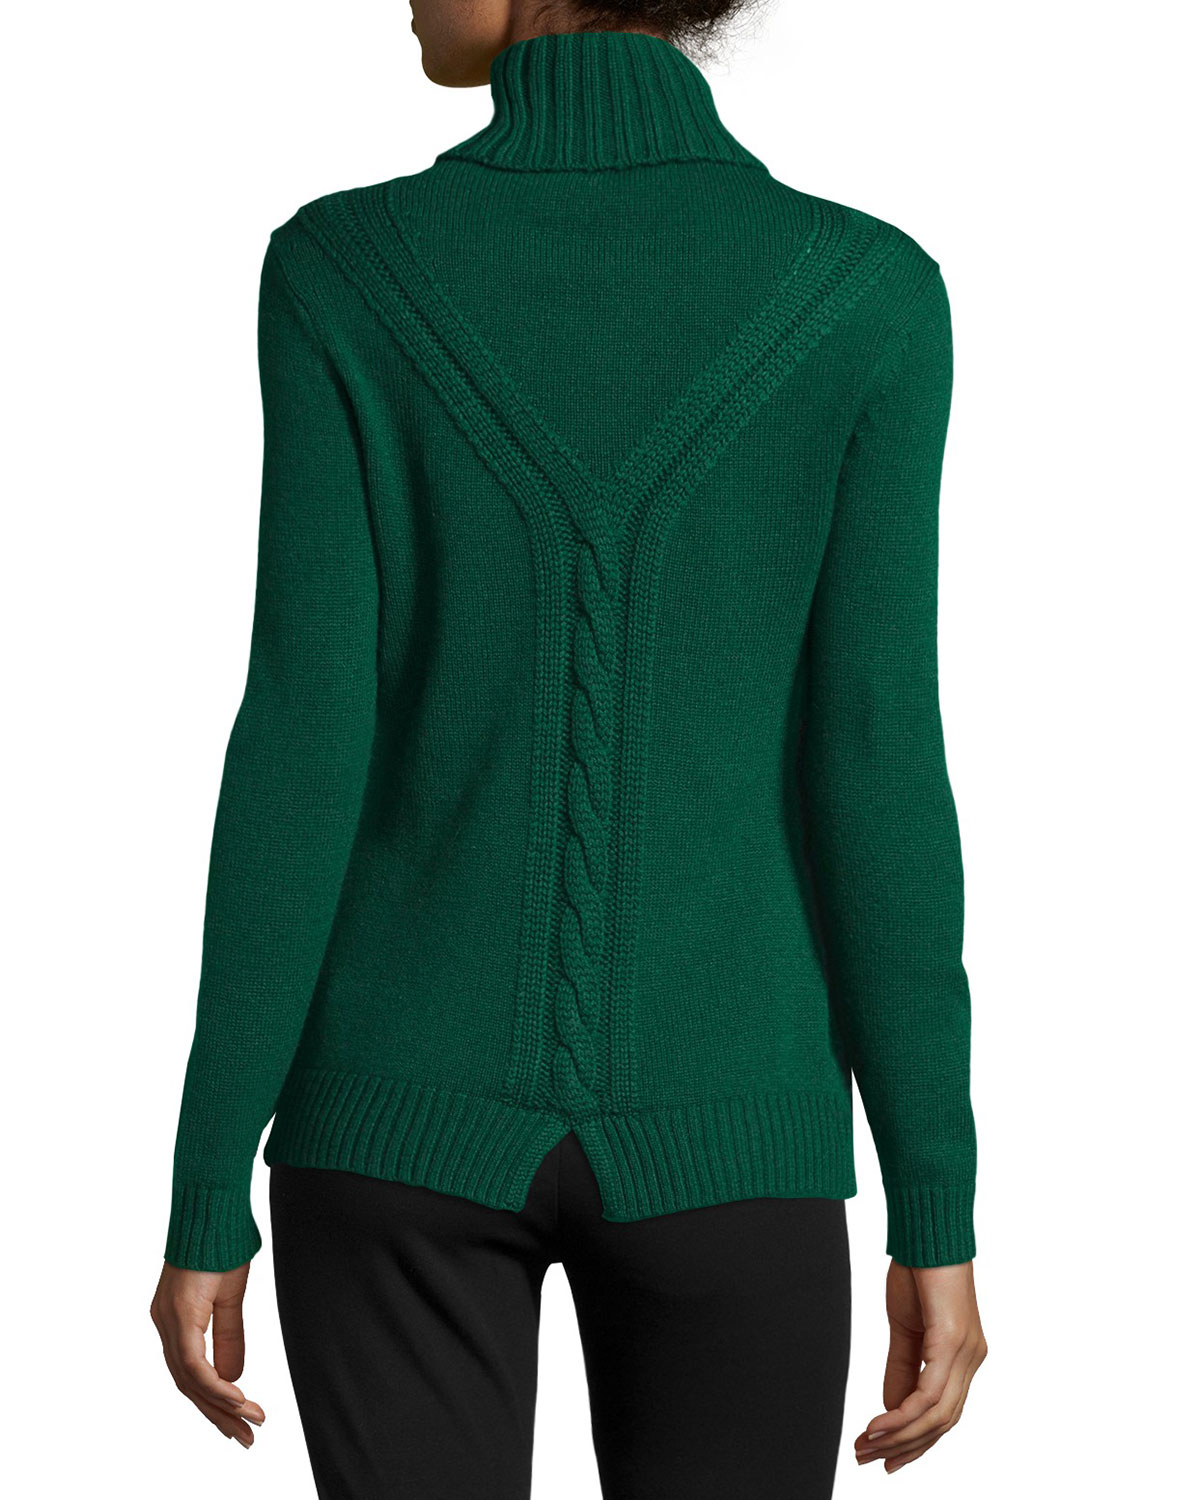 Lafayette 148 new york Long-sleeve Turtleneck Cashmere Sweater in ...